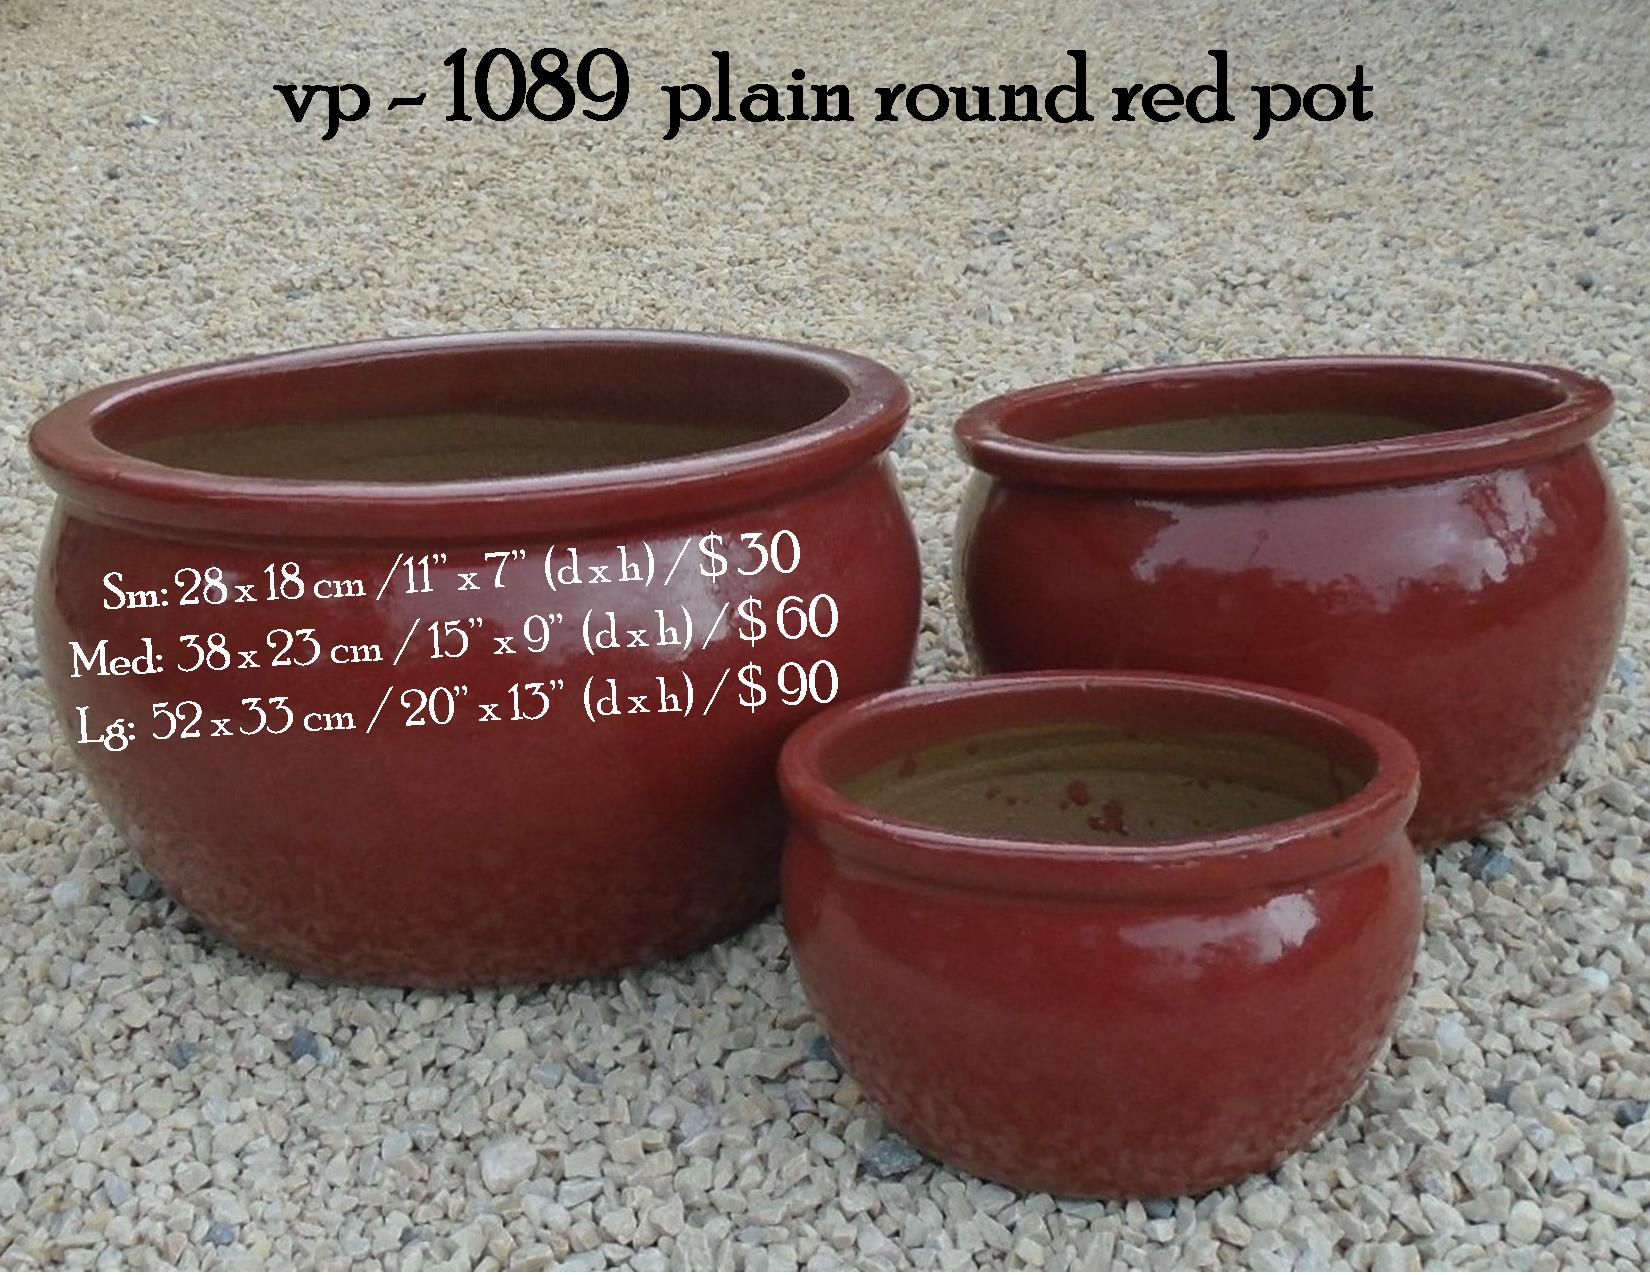 vp - 1089  plain round red pot